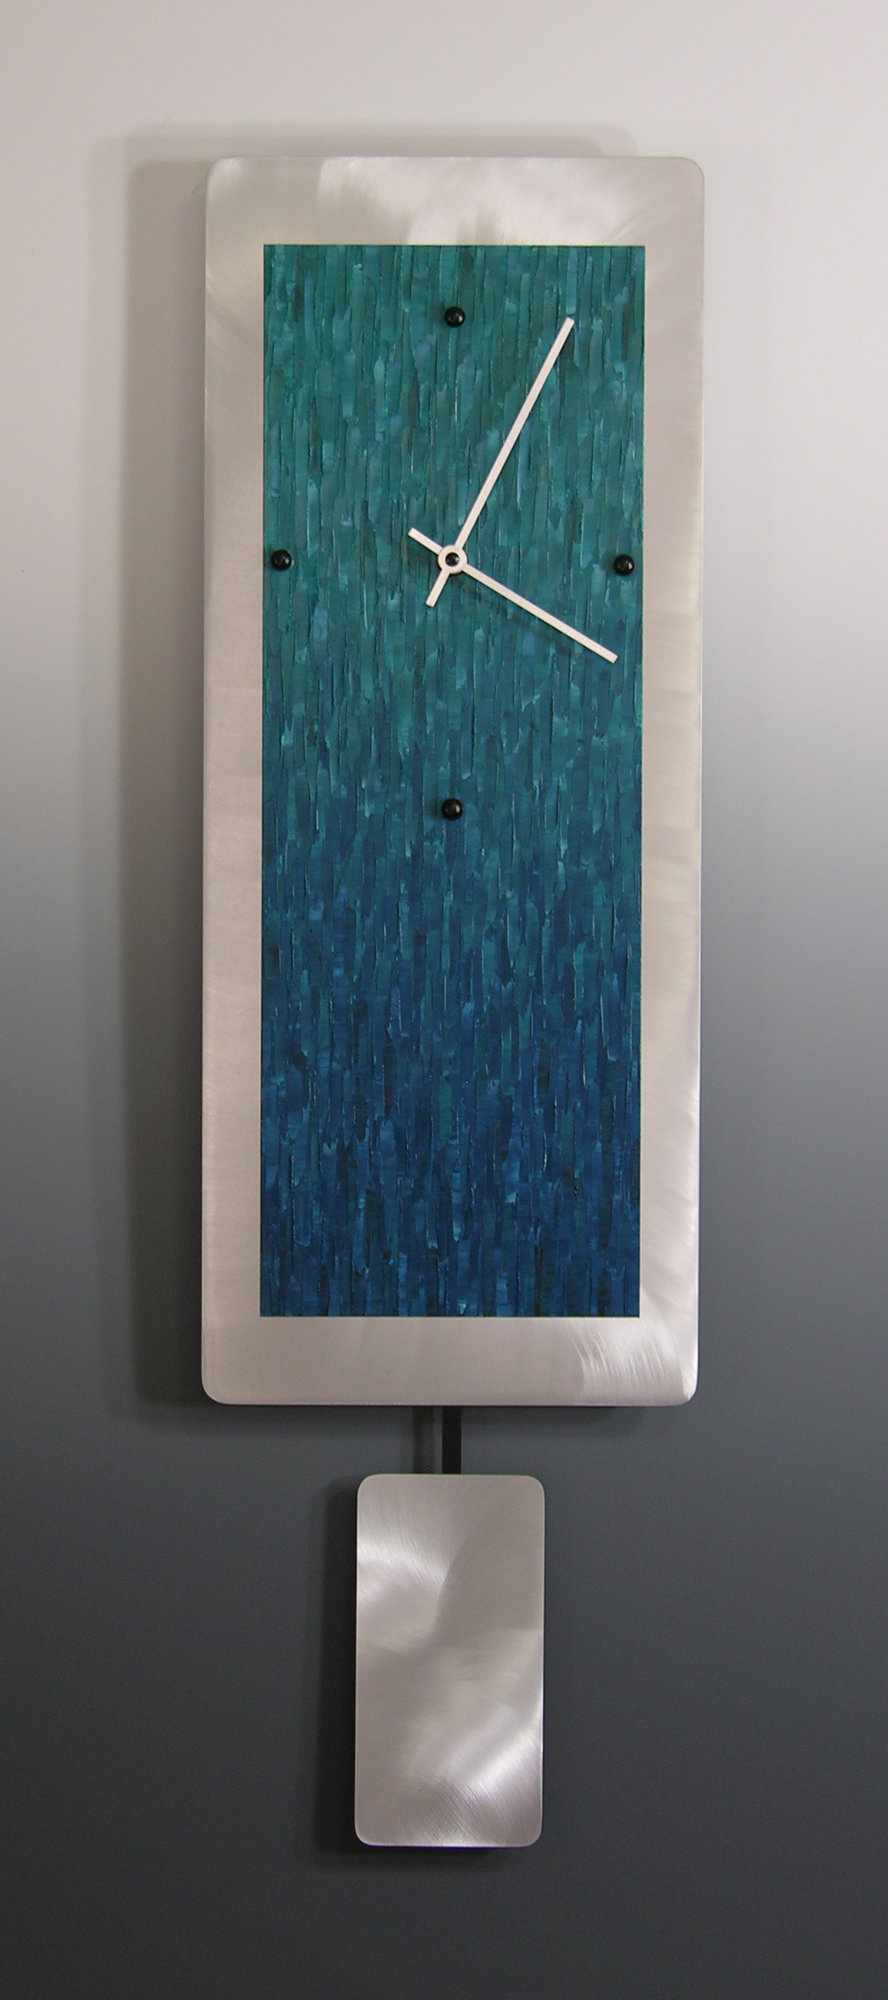 Teal Ocean Blend on Aluminum with Pendulum